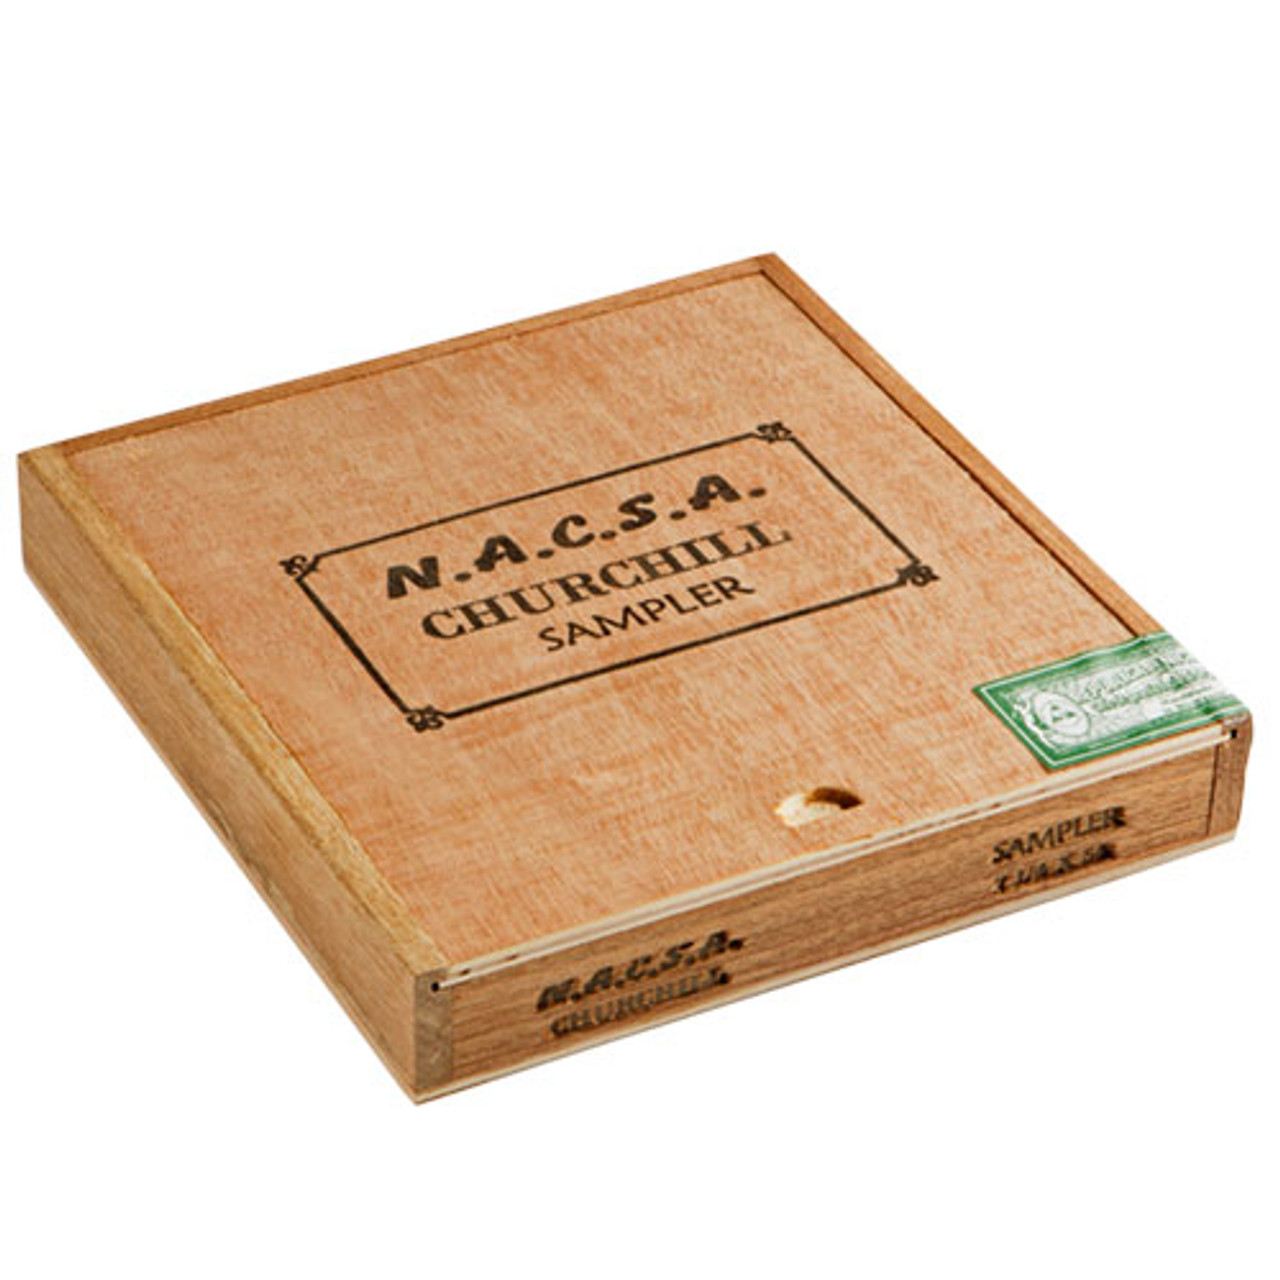 Cigar Samplers NACSA Churchill Sampler Cigars - 7.25 x 54 (Box of 8)